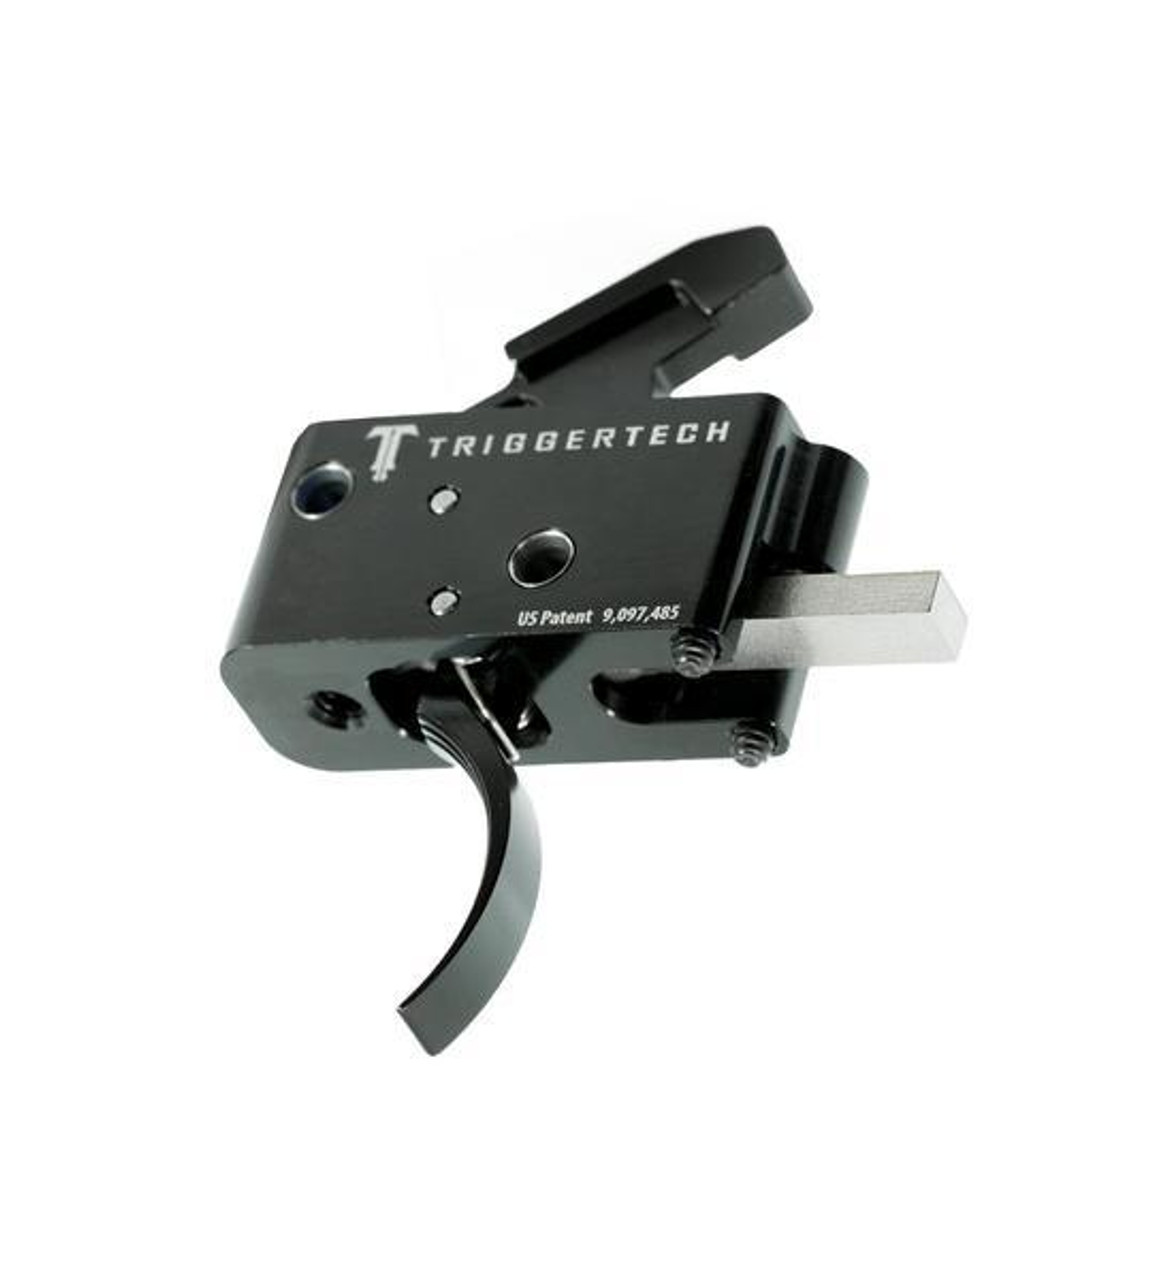 TriggerTech Adaptable AR Primary Trigger - Curved / Black PVD